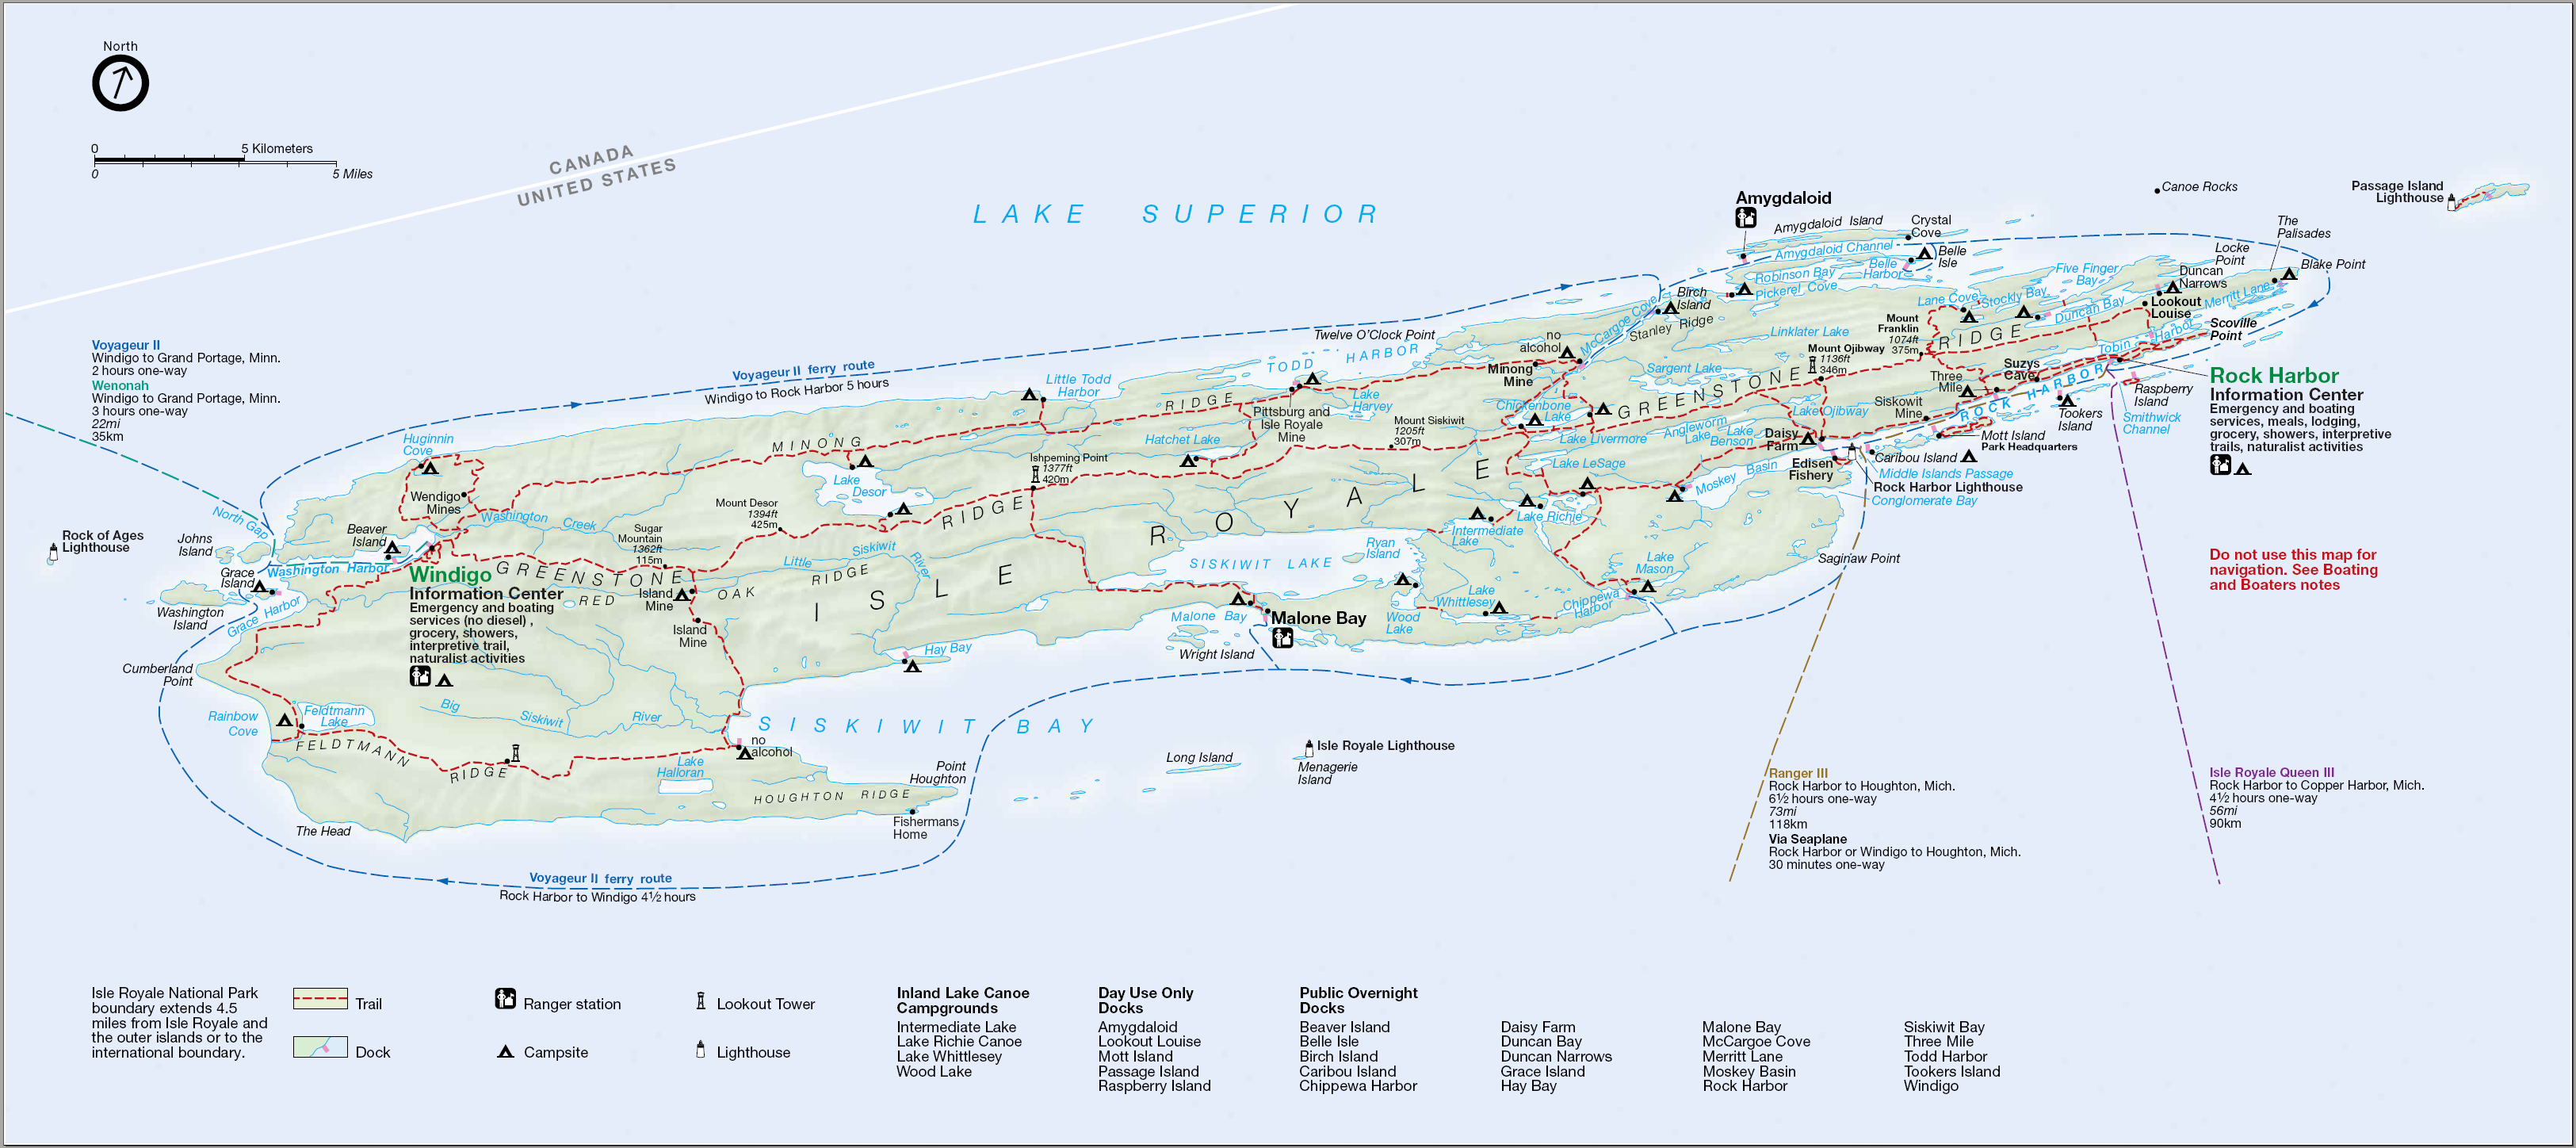 filemap of isle royale national parkpng. filemap of isle royale national parkpng  wikimedia commons